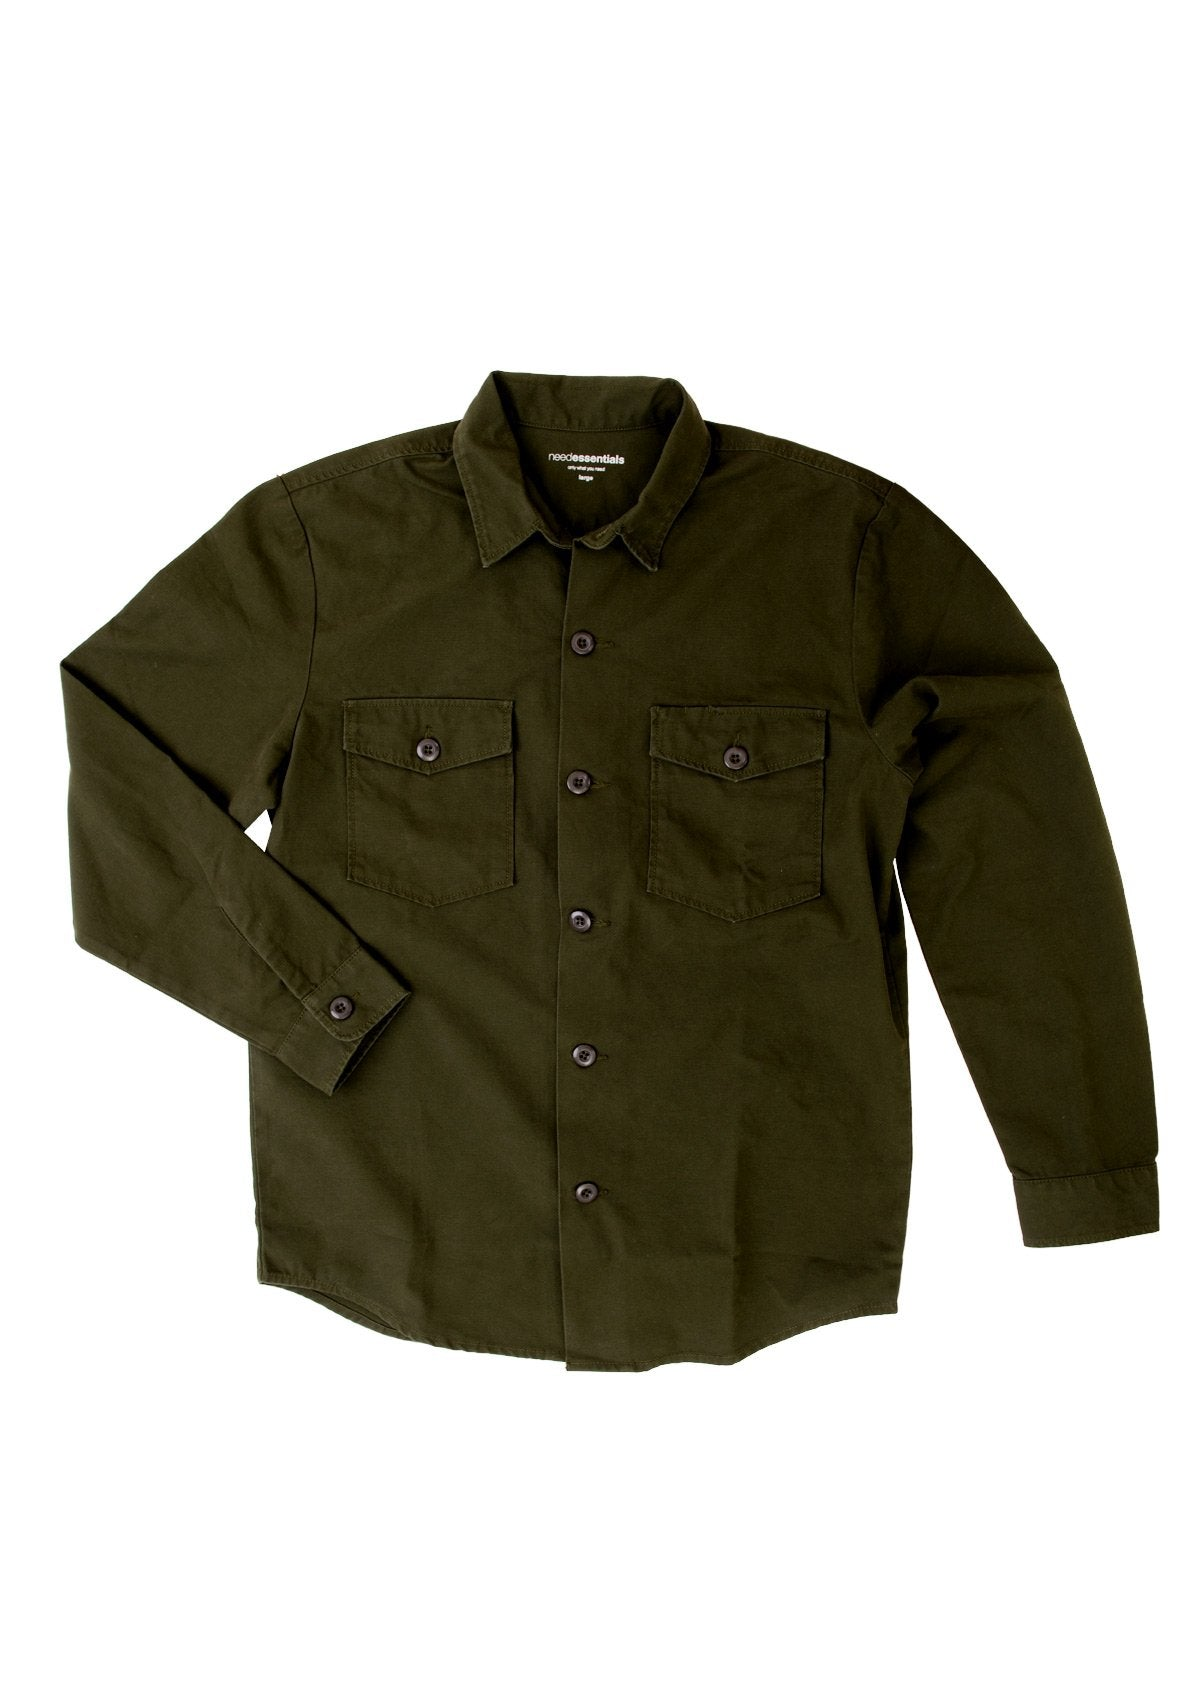 needessentials organic cotton heavy weight shirt olive